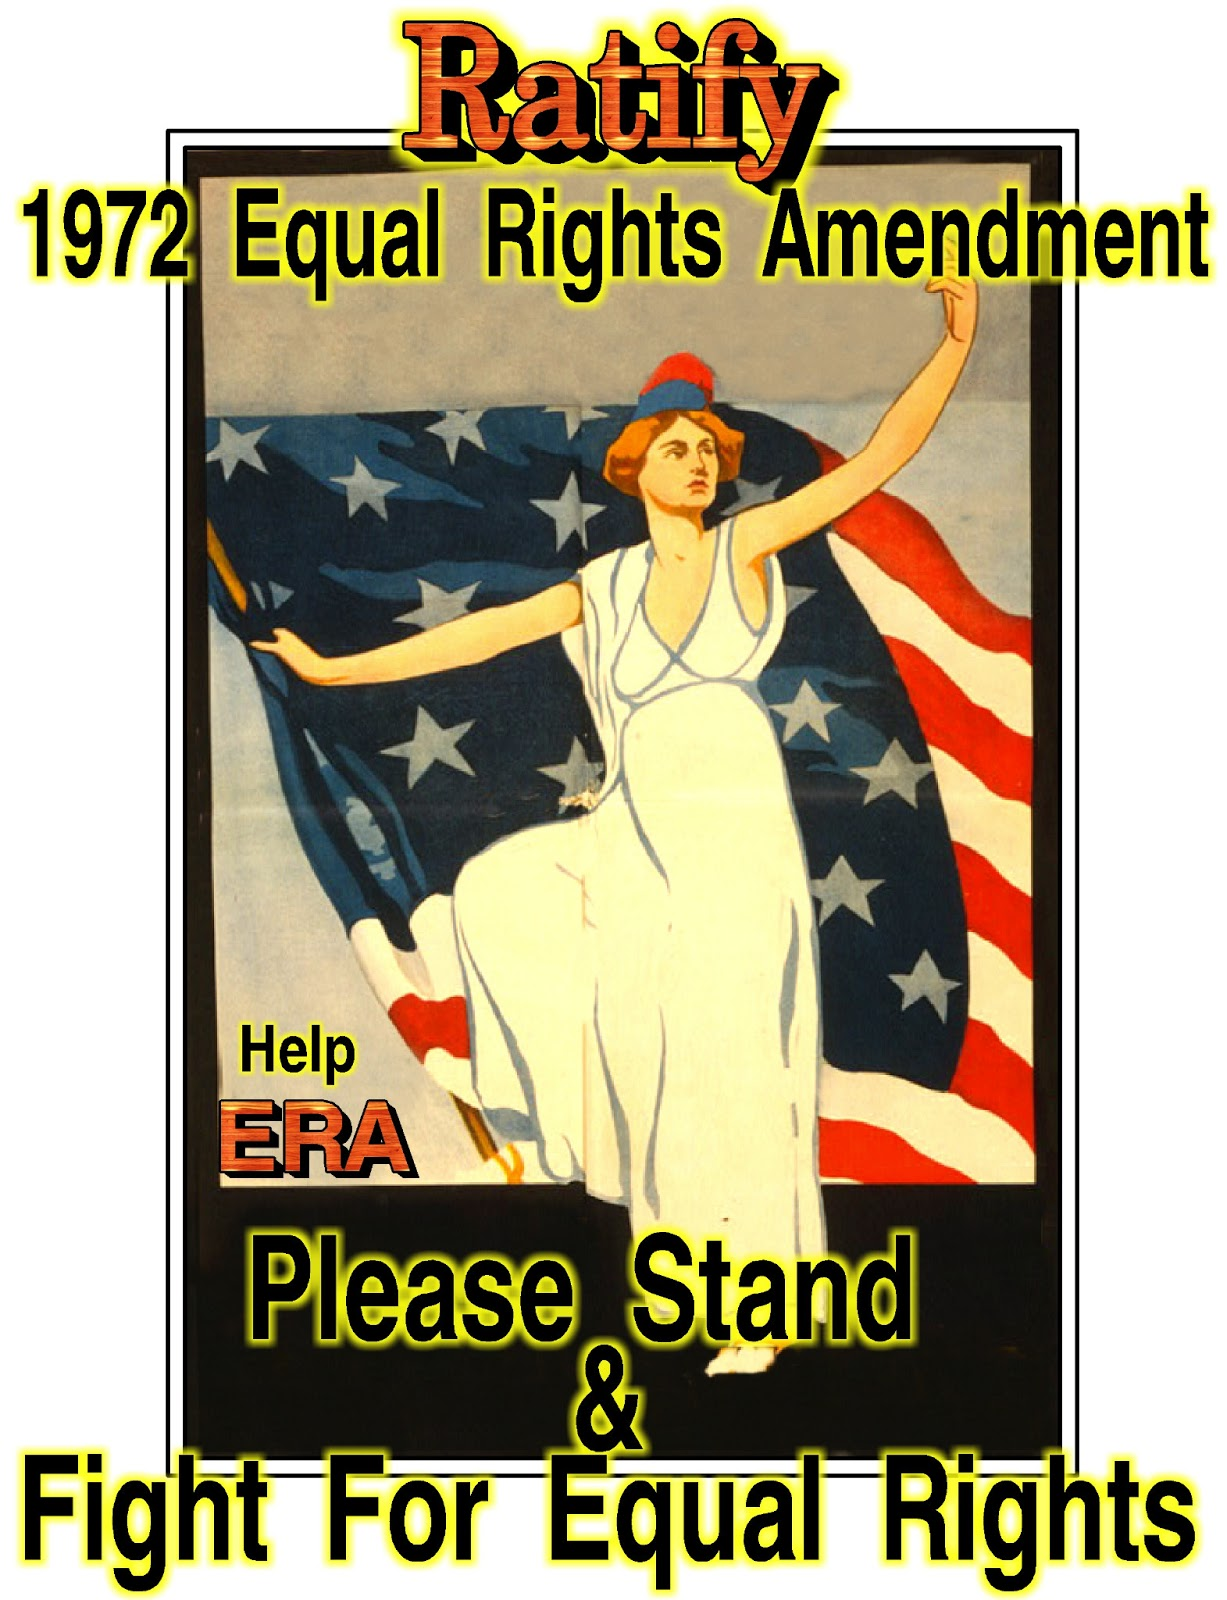 equal rights The equal rights amendment passed the us senate and then the house of representatives, and on march 22, 1972, the proposed 27th amendment to the constitution was sent to the states for ratification.